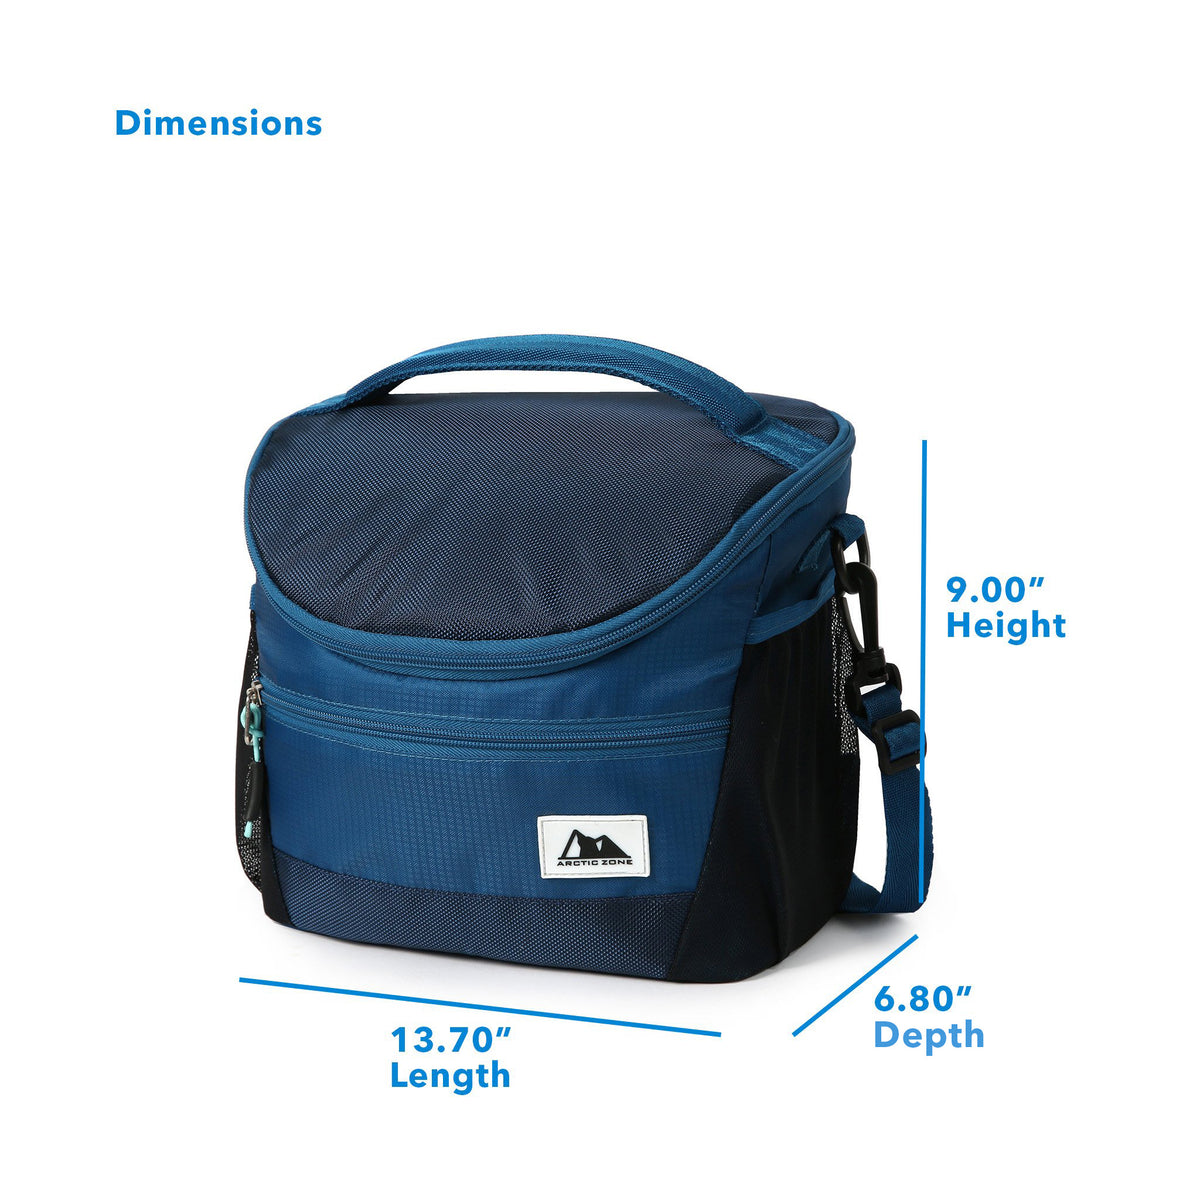 "High Performance Meal Prep Day Pack - Blue - Dimensions (L x D x H) 13.70"" x 6.80"" x 9.00"""